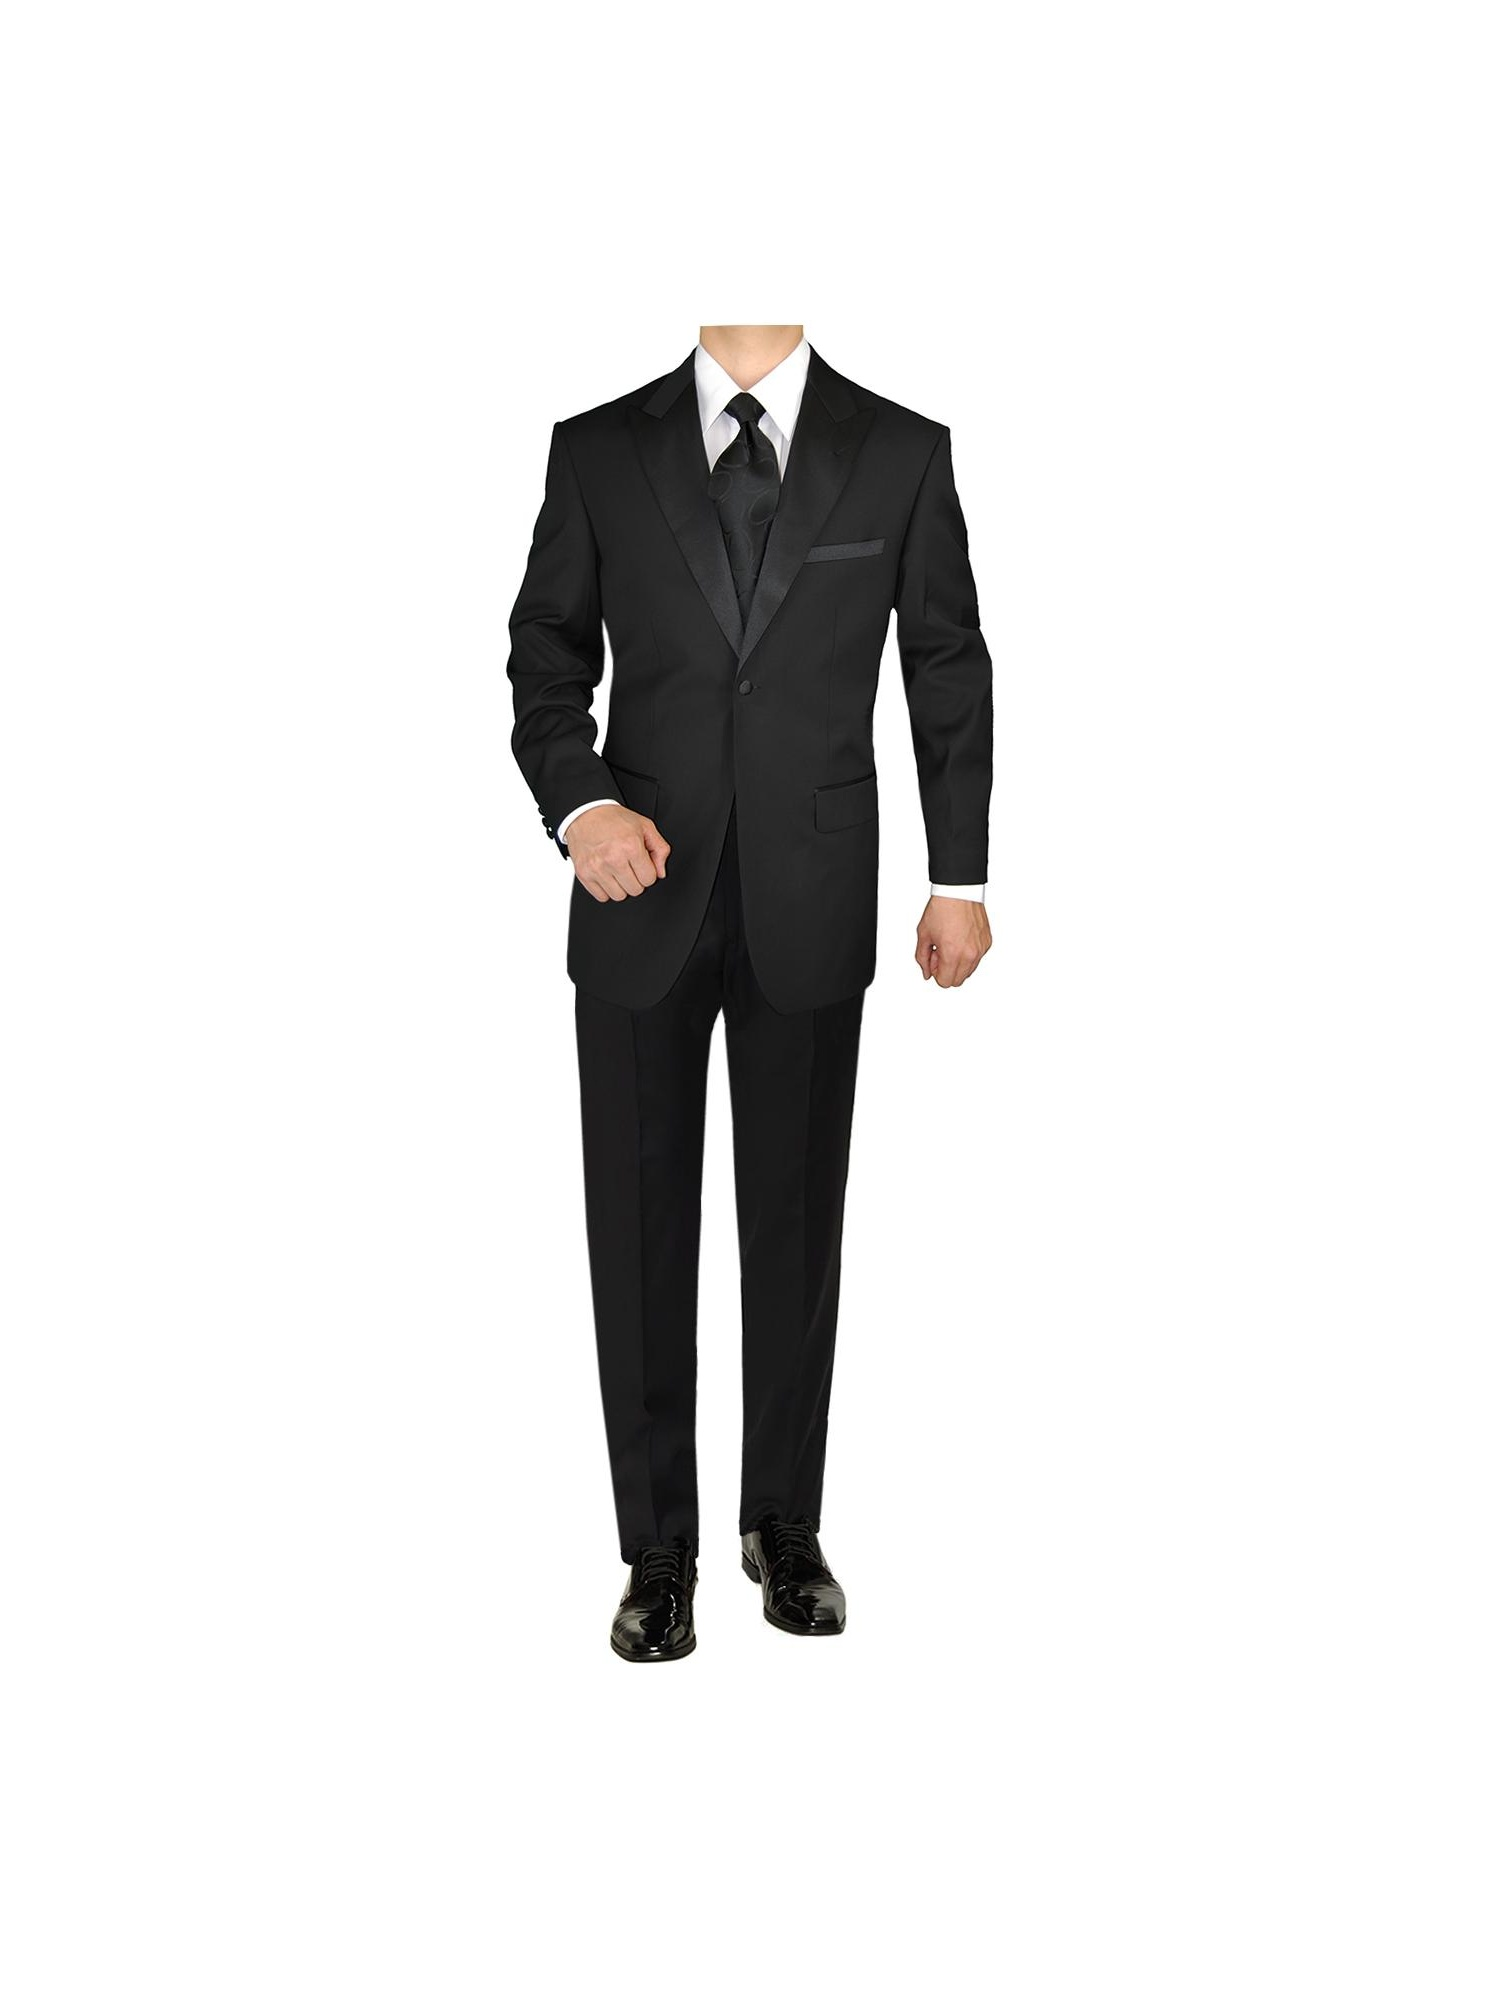 Wonder Stage Mens Slim Fit 4 Pc Black Tuxedo Suit Jacket Pants Cummerbund Bowtie